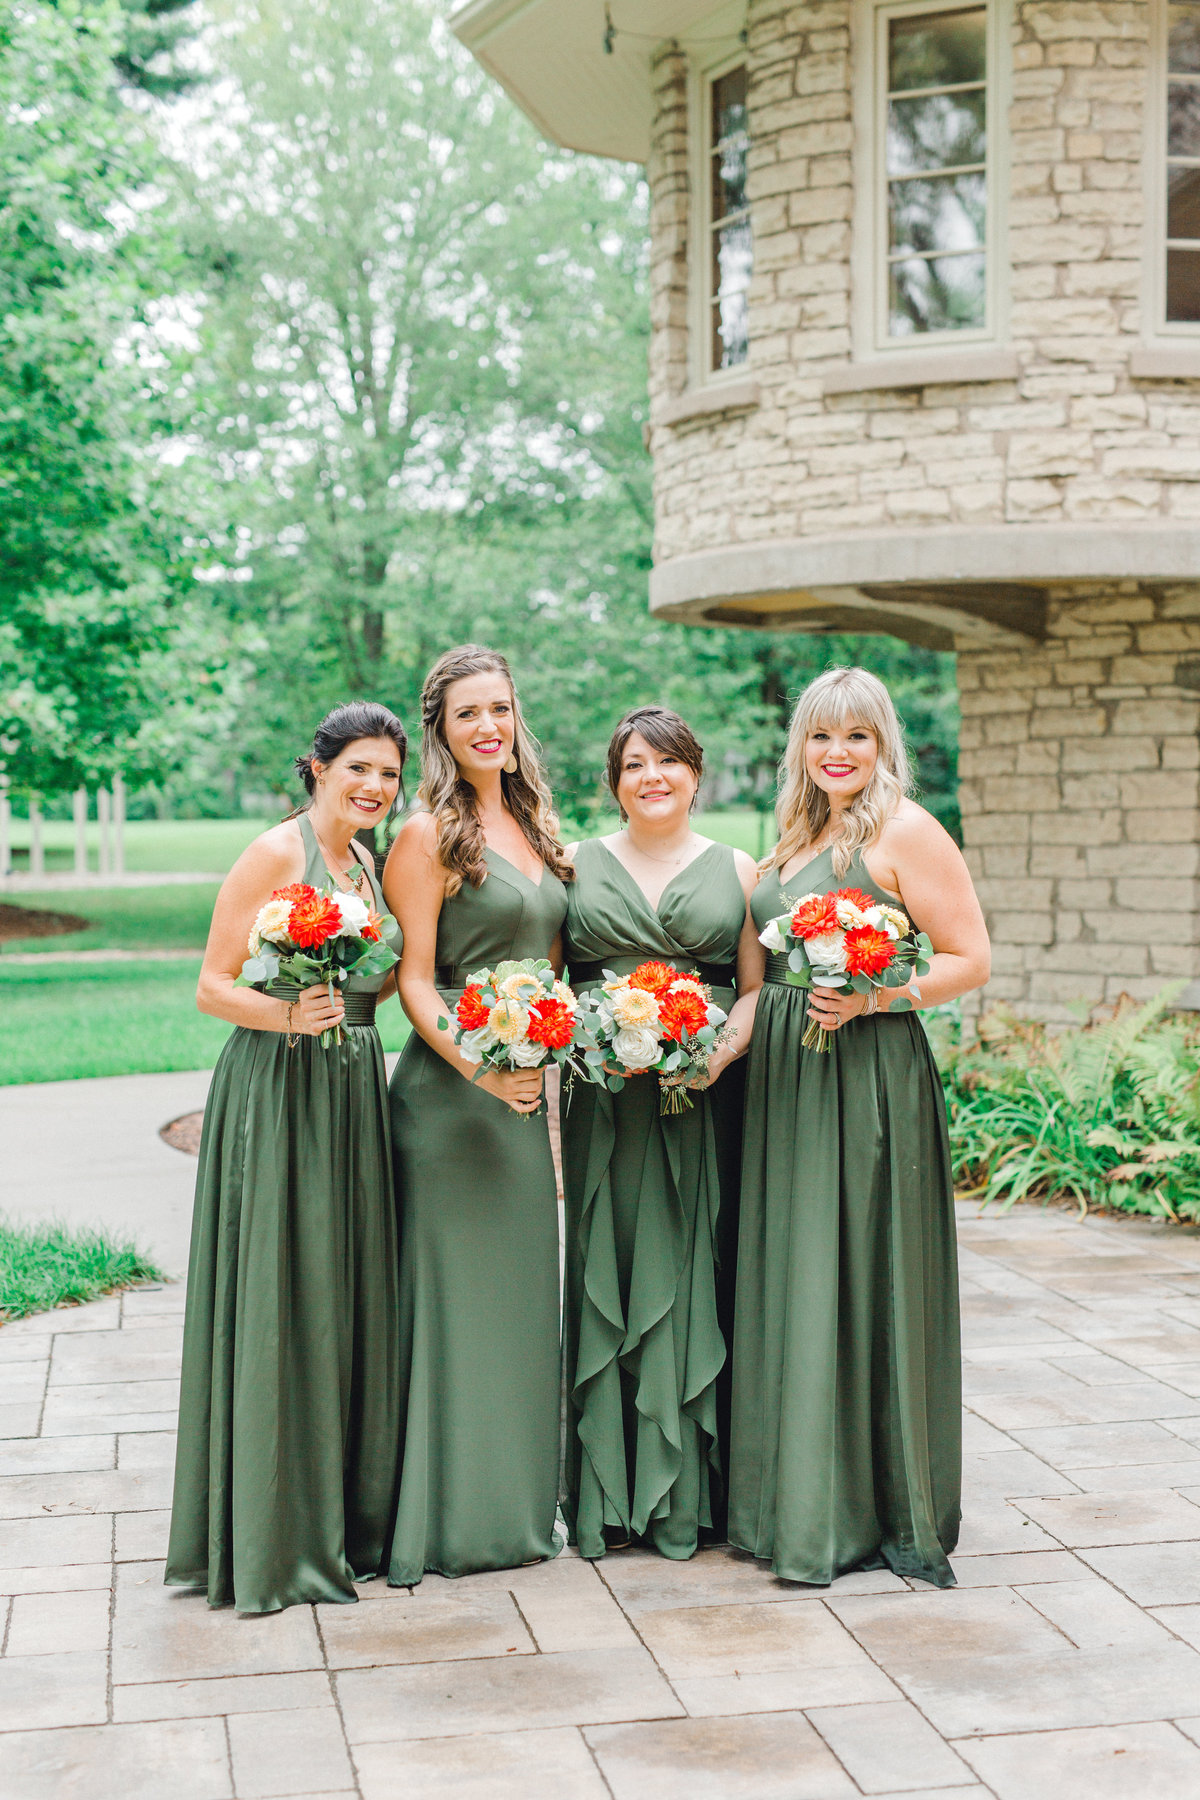 Ned-Ashton-House-Wedding-Ellen+Mack-3444